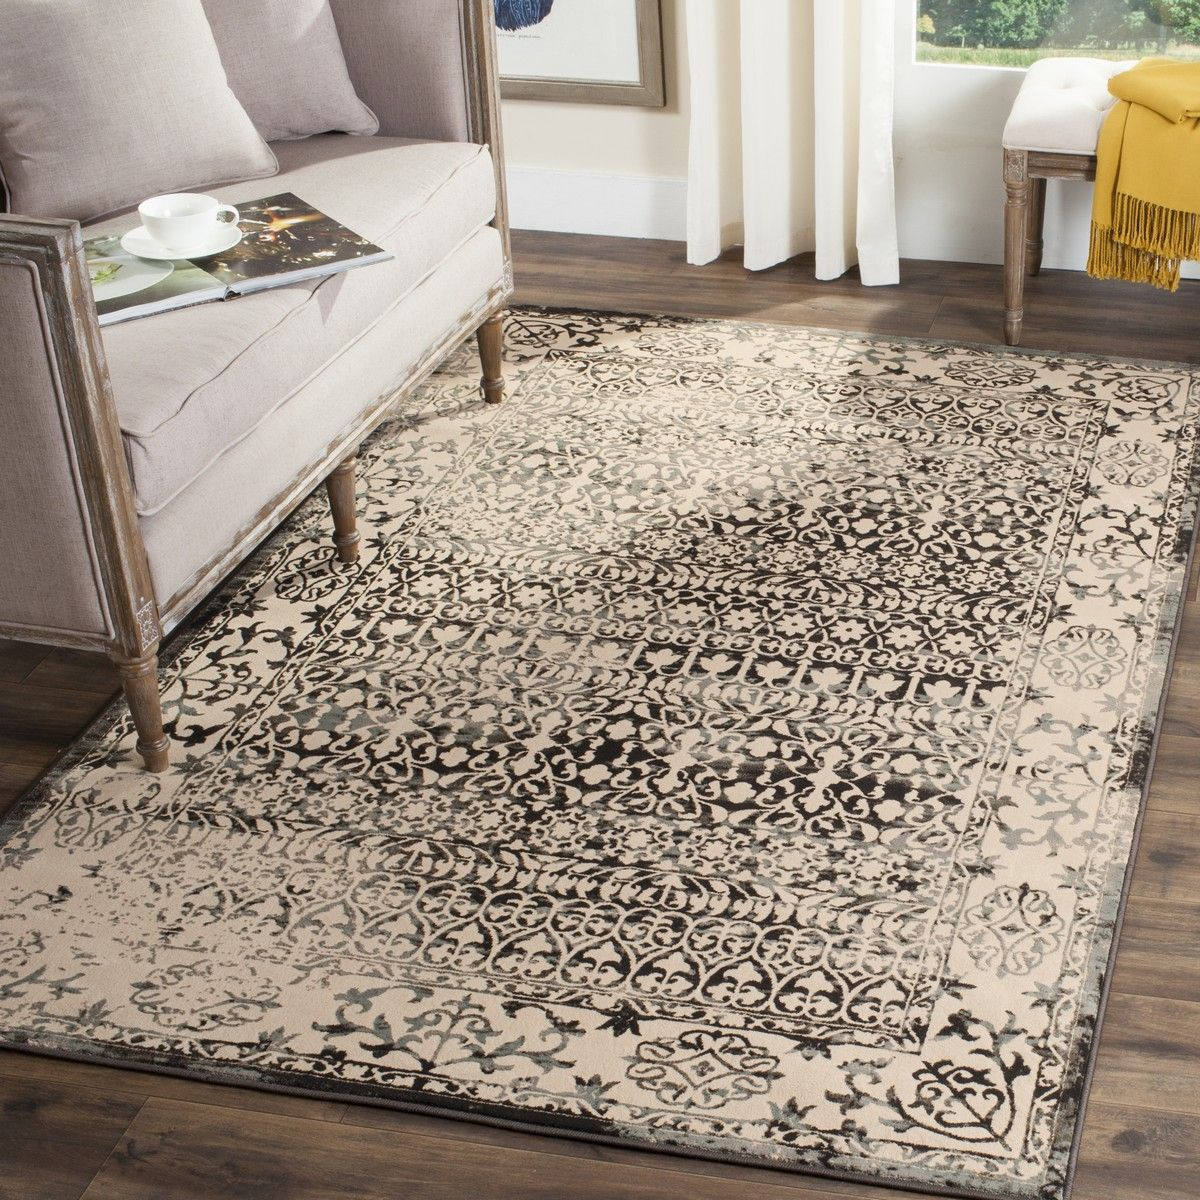 Rug Brl506k Brilliance Area Rugs By Safavieh Dark Gray Area Rug Area Rugs Grey Area Rug